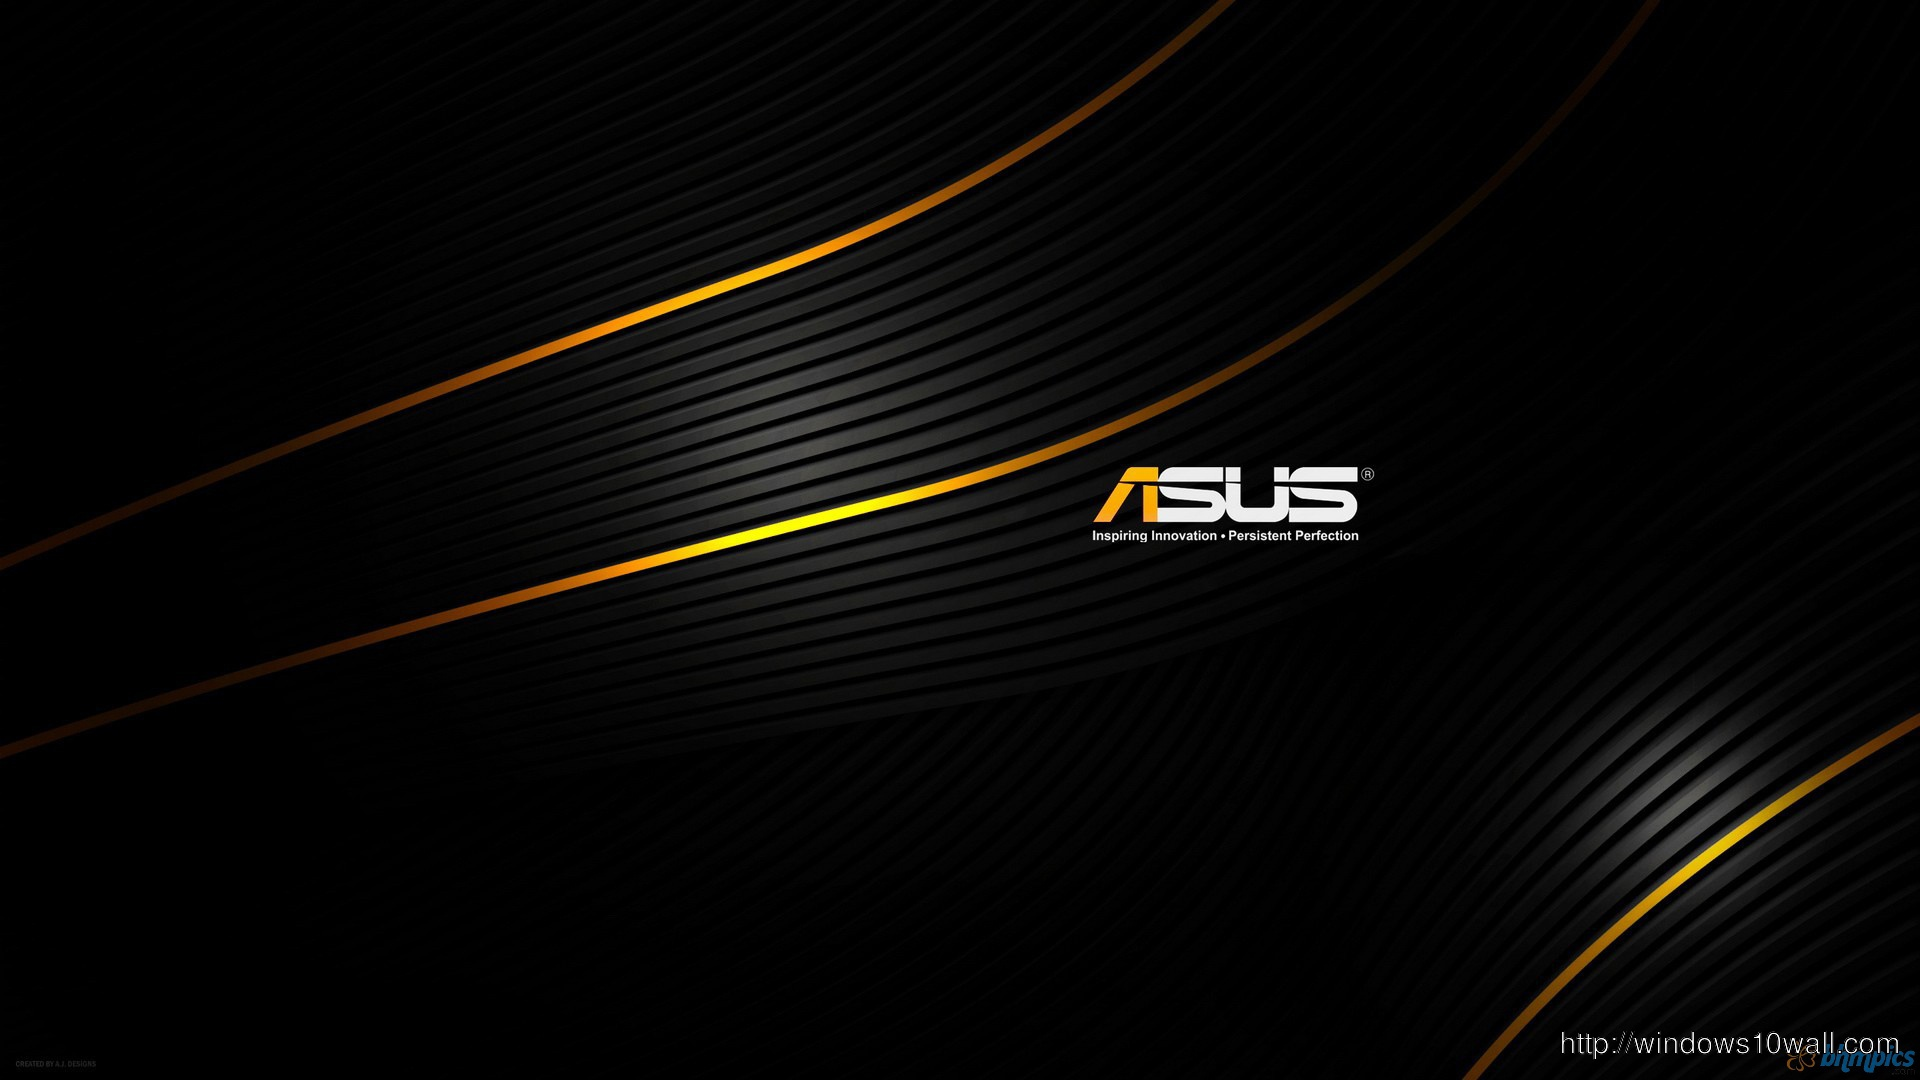 Black Asus Background Wallpaper Windows 10 Wallpapers